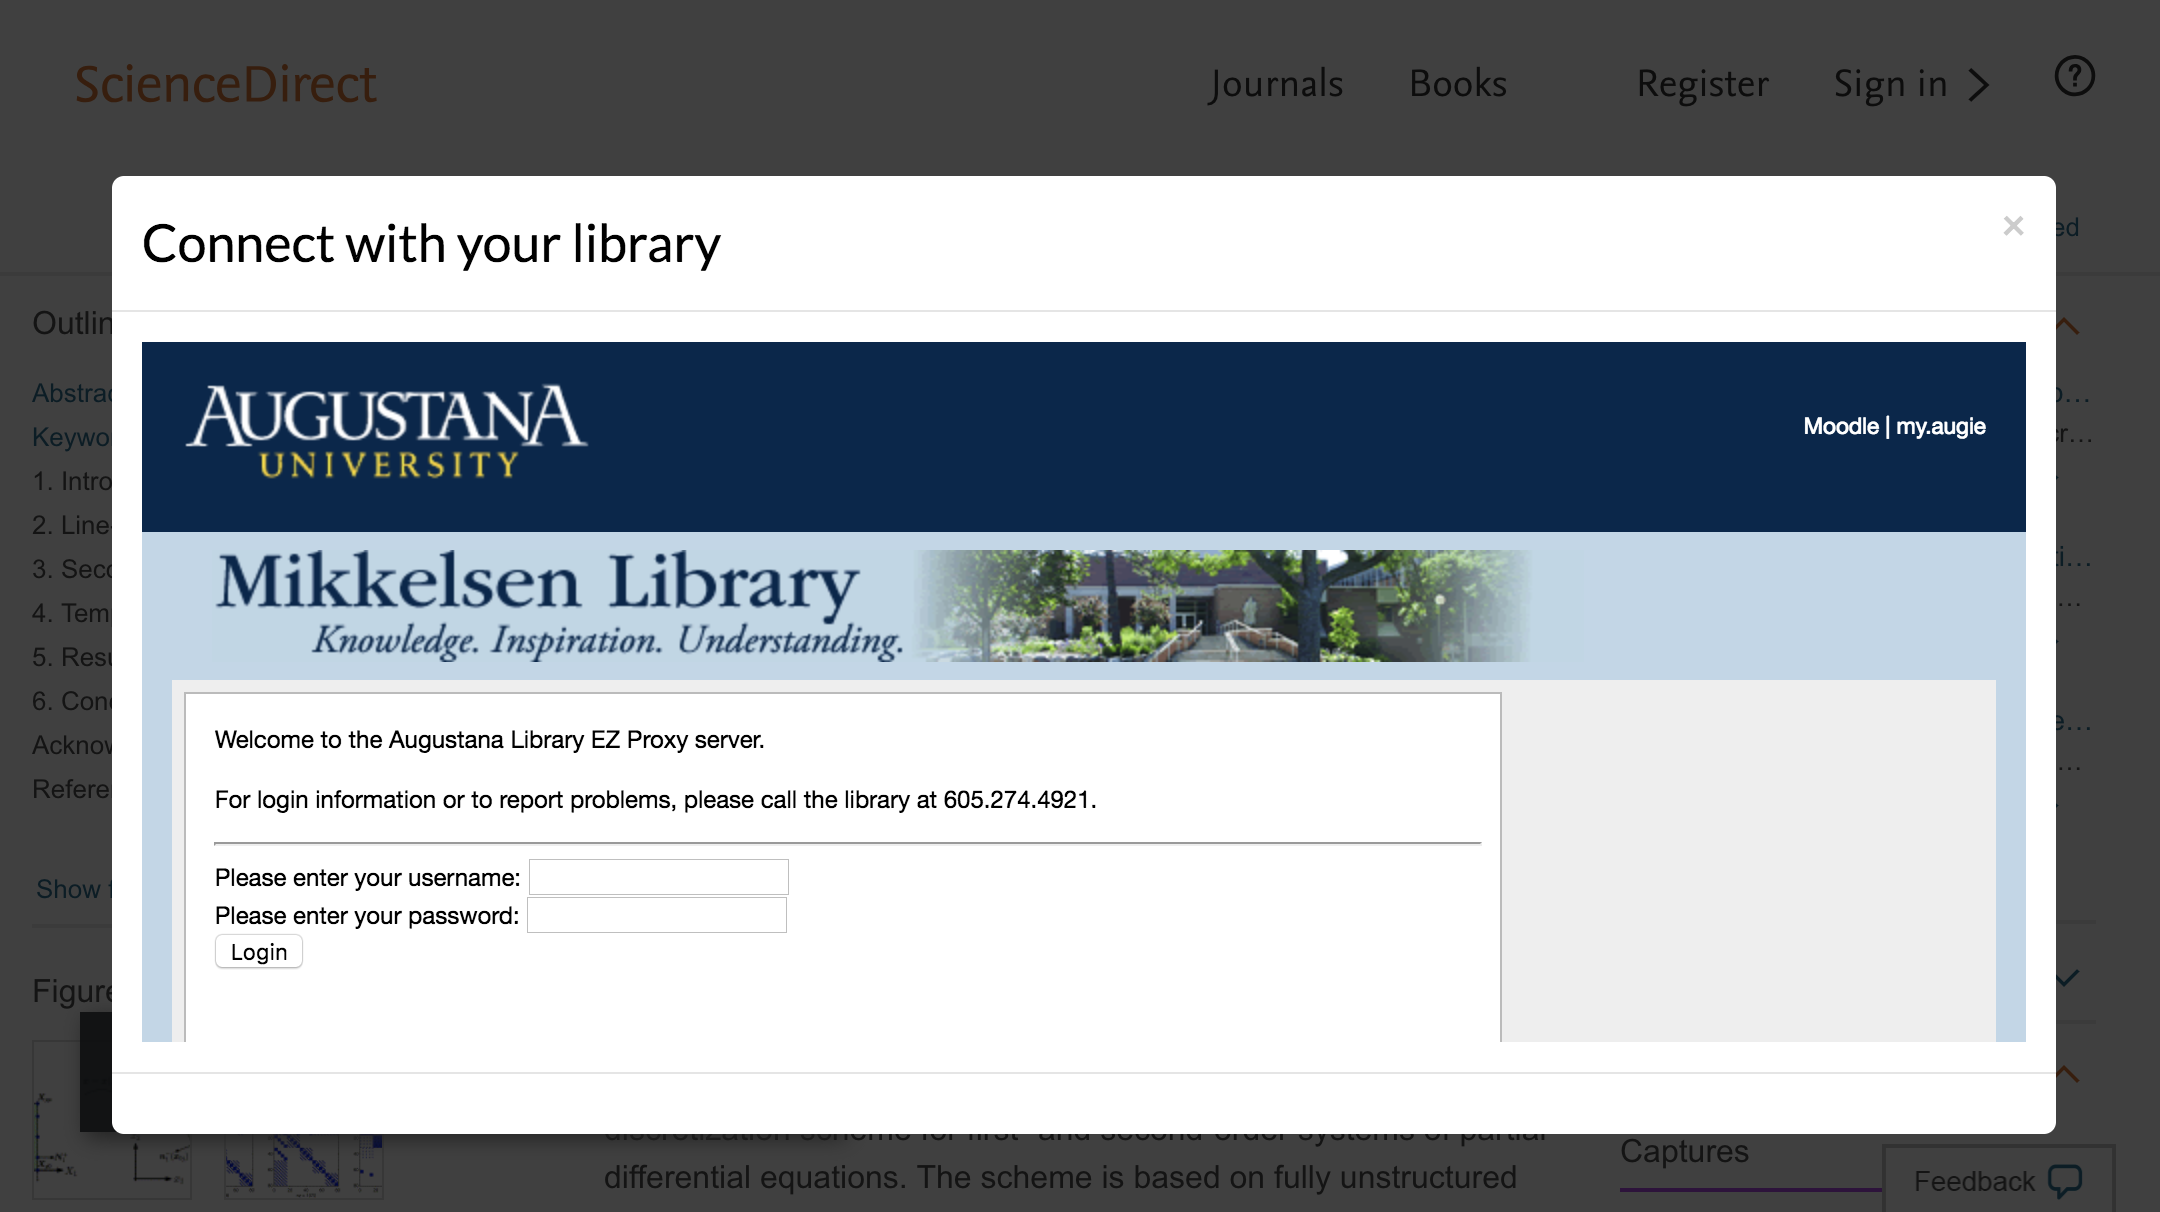 Enter Augustana University credentials to access journal subscriptions.